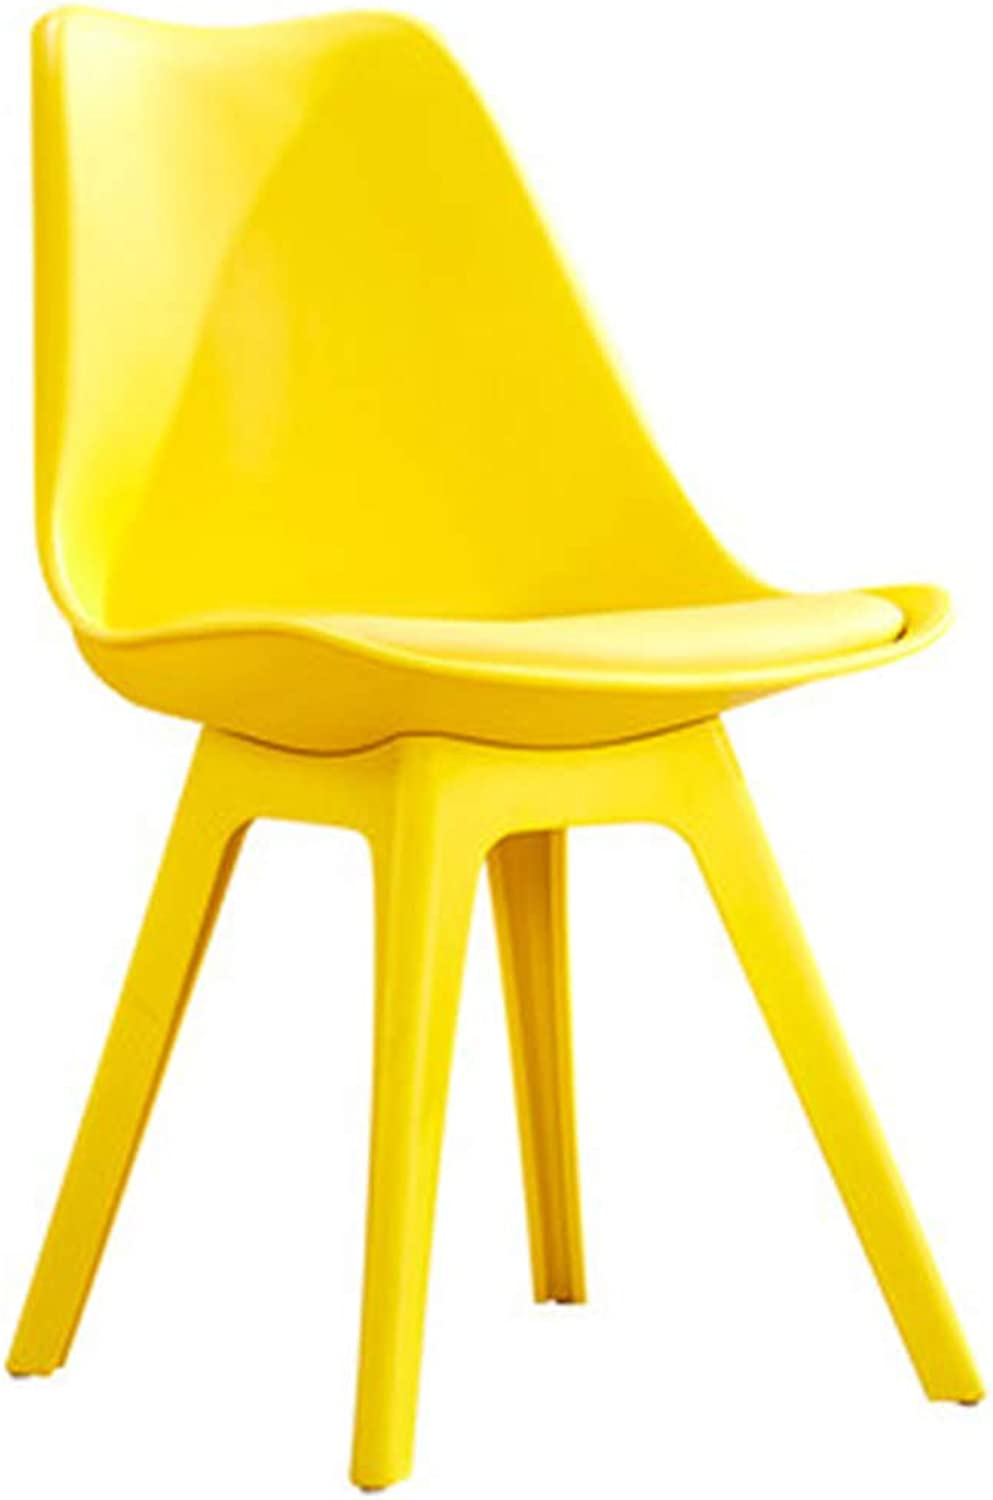 Chair Chair Modern Simplicity Easy Assembly One-Piece Design Restaurant Study Room (color   Yellow)